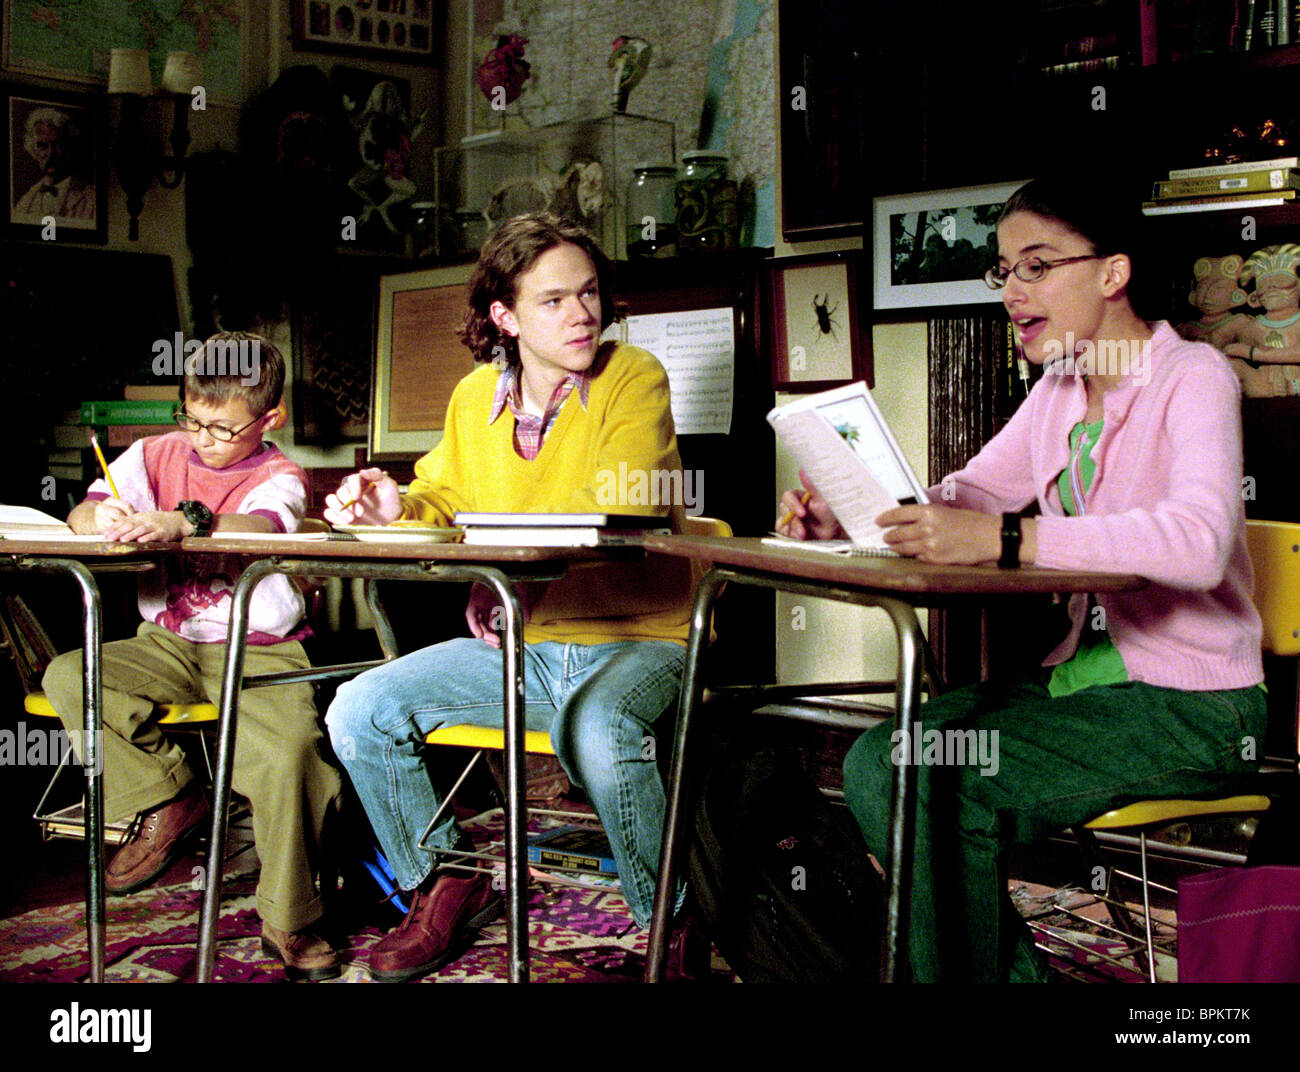 MATT WEINBERG, JOSEPH CROSS, TANIA RAYMONDE, THE O'KEEFES, 2003 Stock Photo